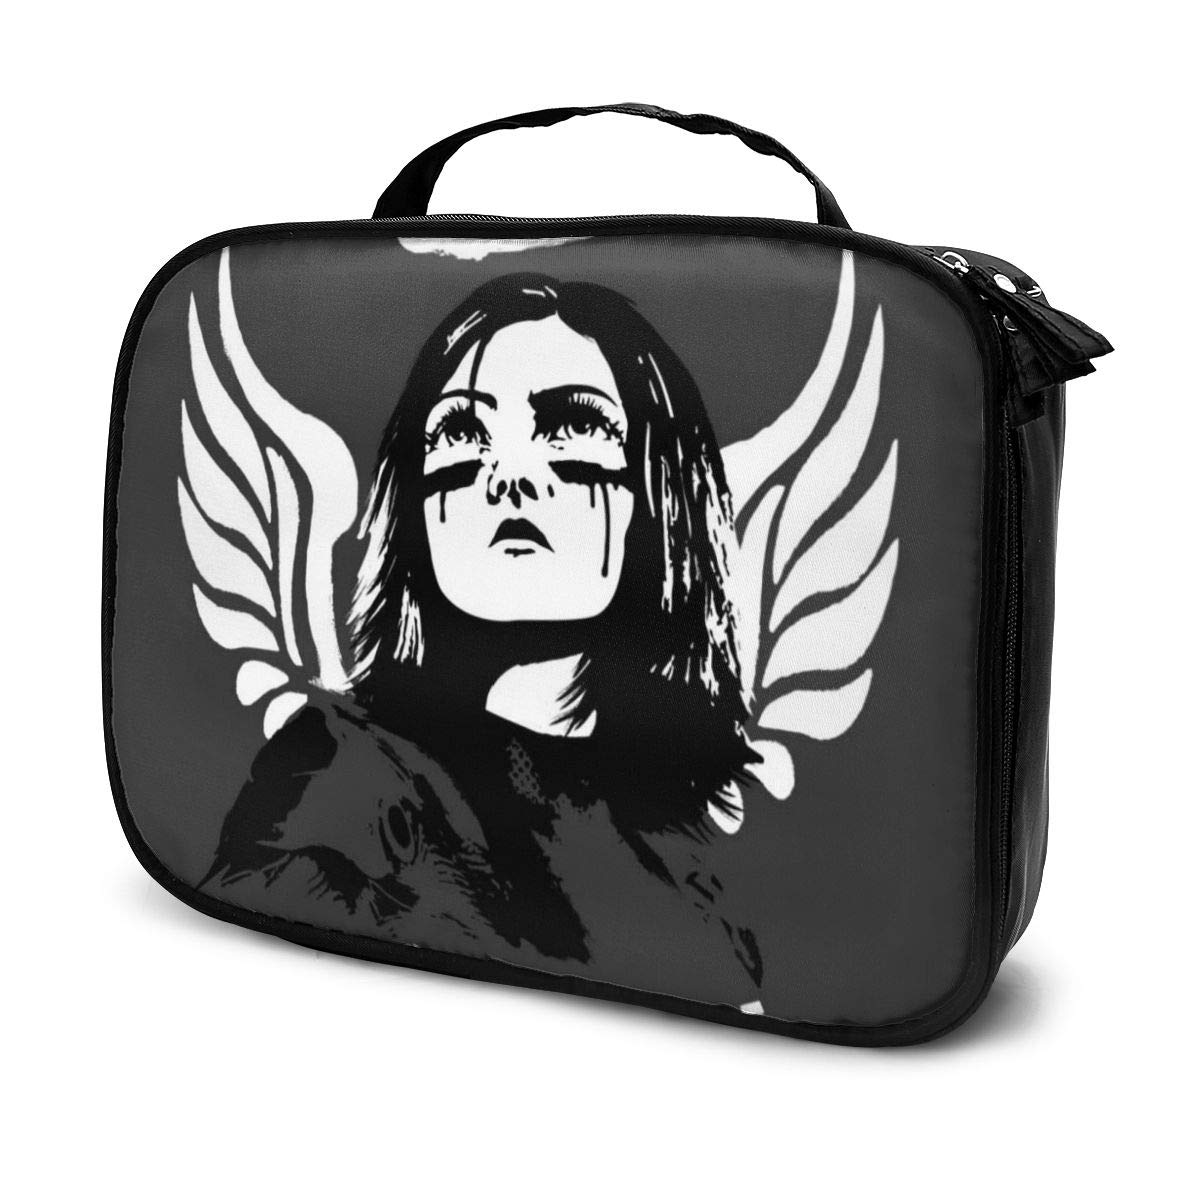 Multi-Functional Bag With Compartments Alita Battle Angel Viva Cyborg Professional Cosmetic Pouch Travel Kit Makeup Boxes Makeup Bag